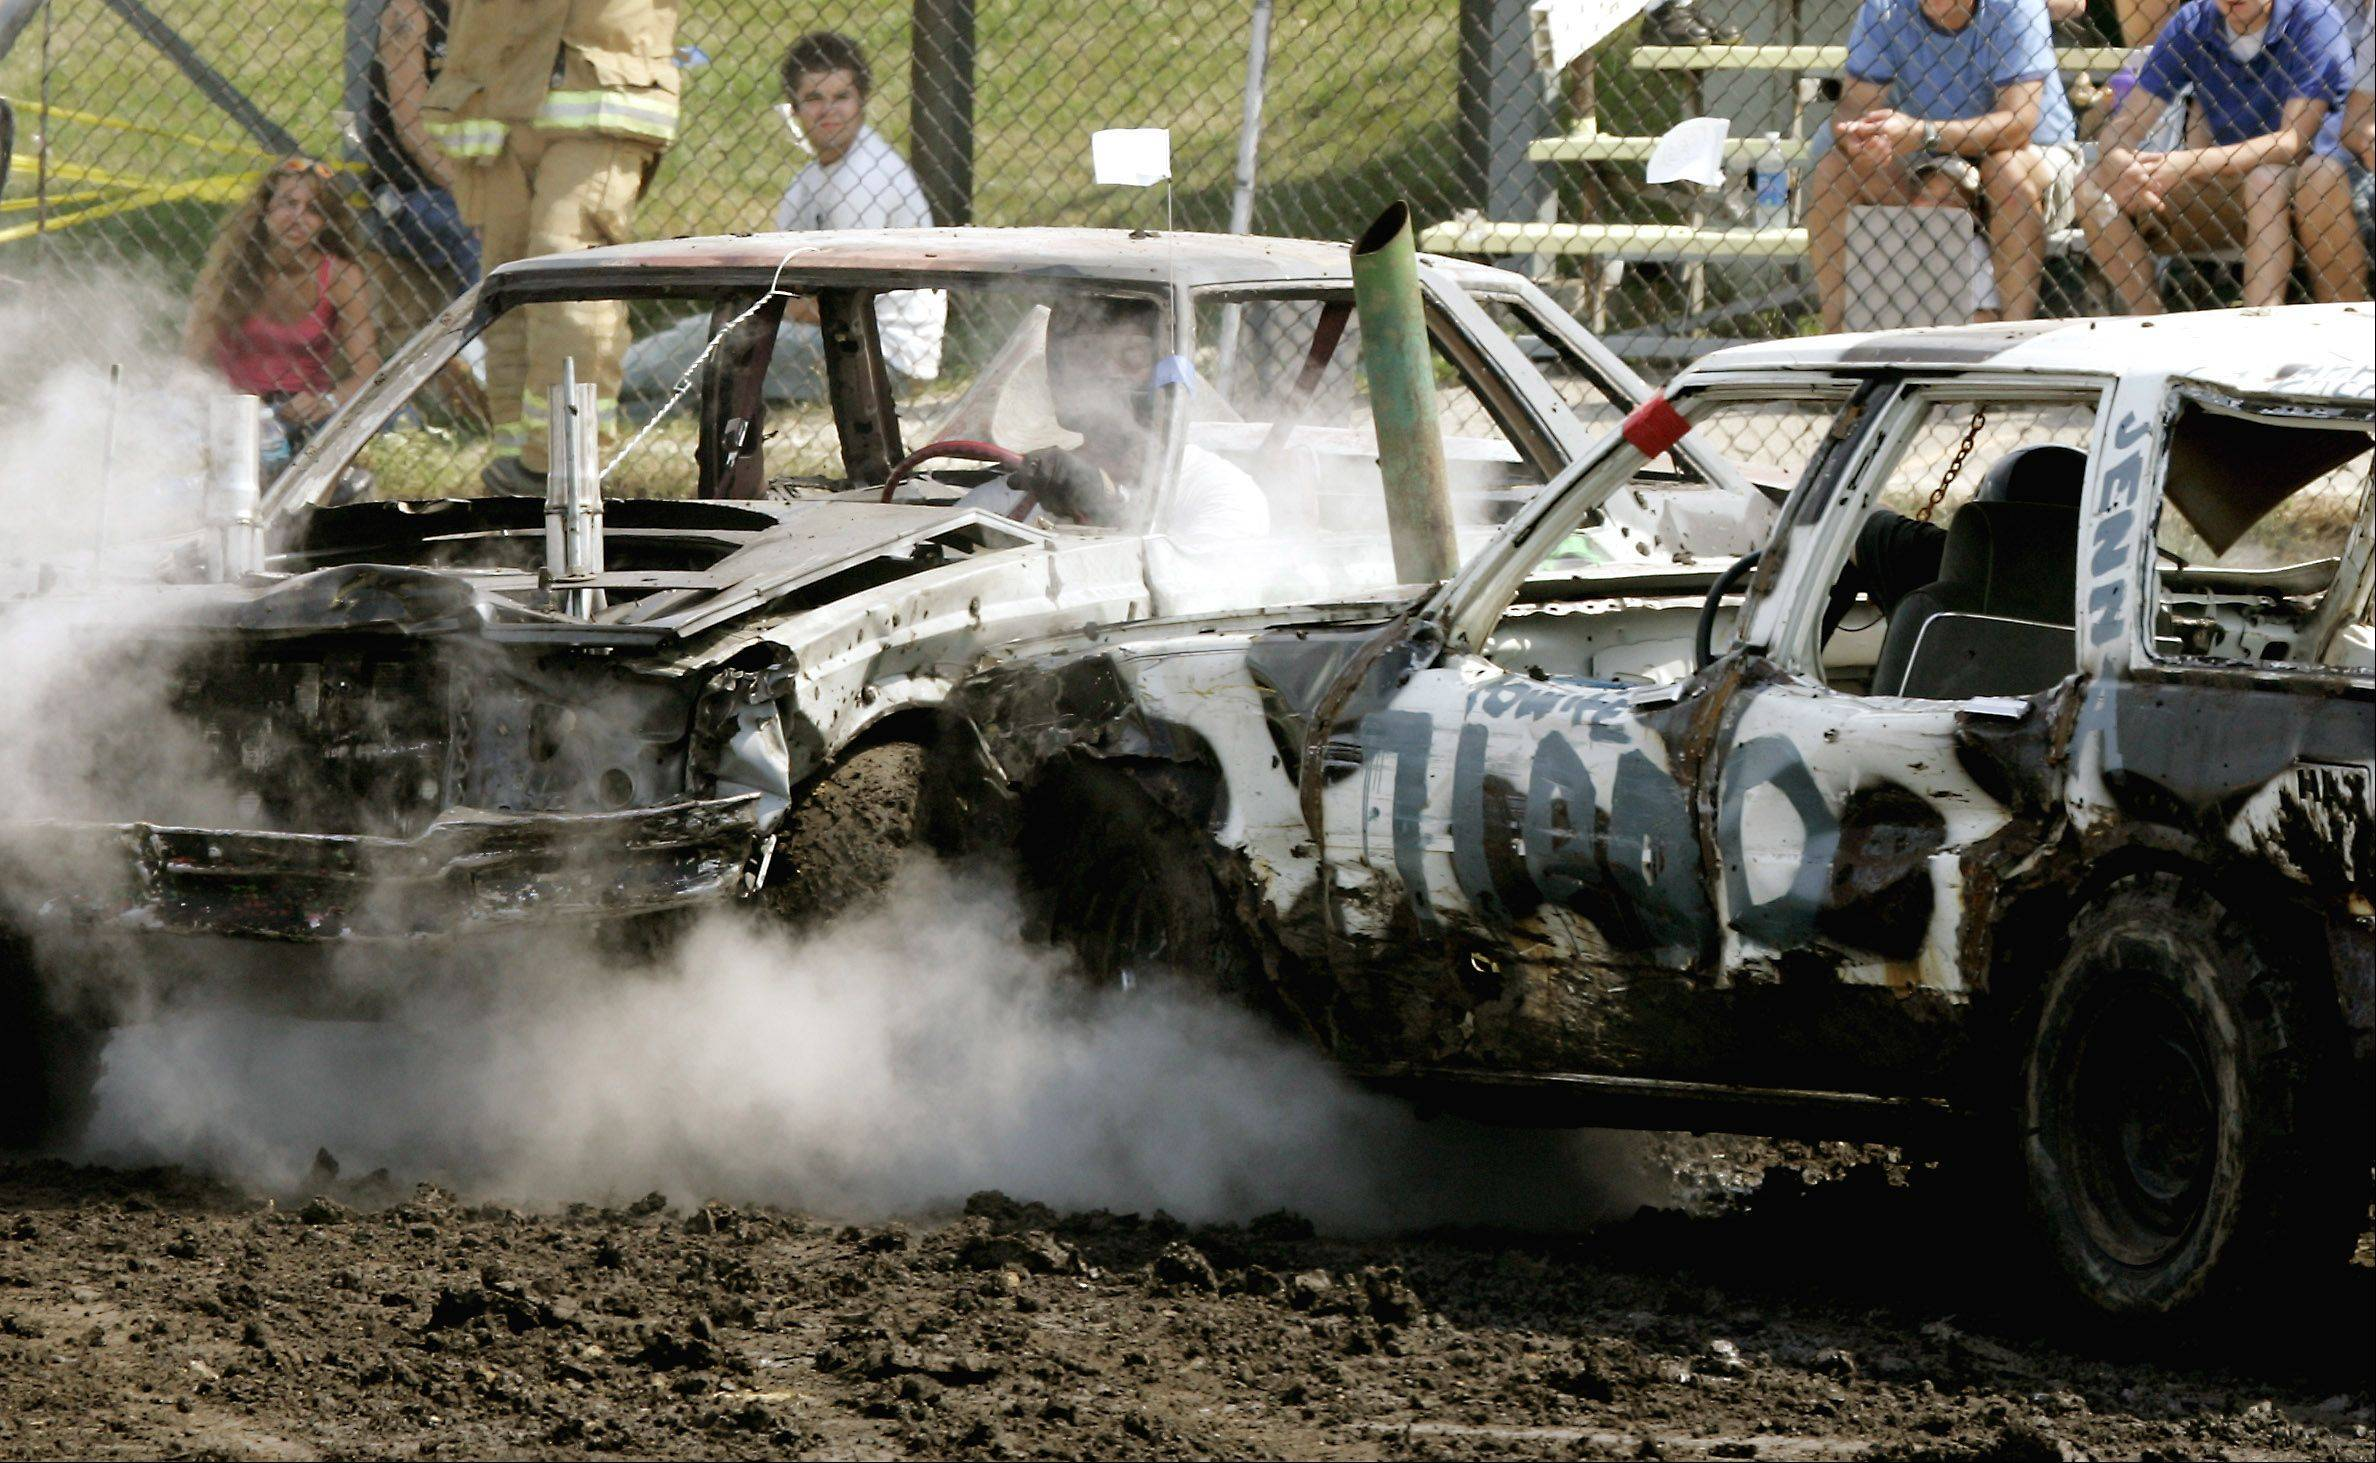 2005: Dwight Fernald of Lombard, right, crashes into another car during the Demolition Derby.